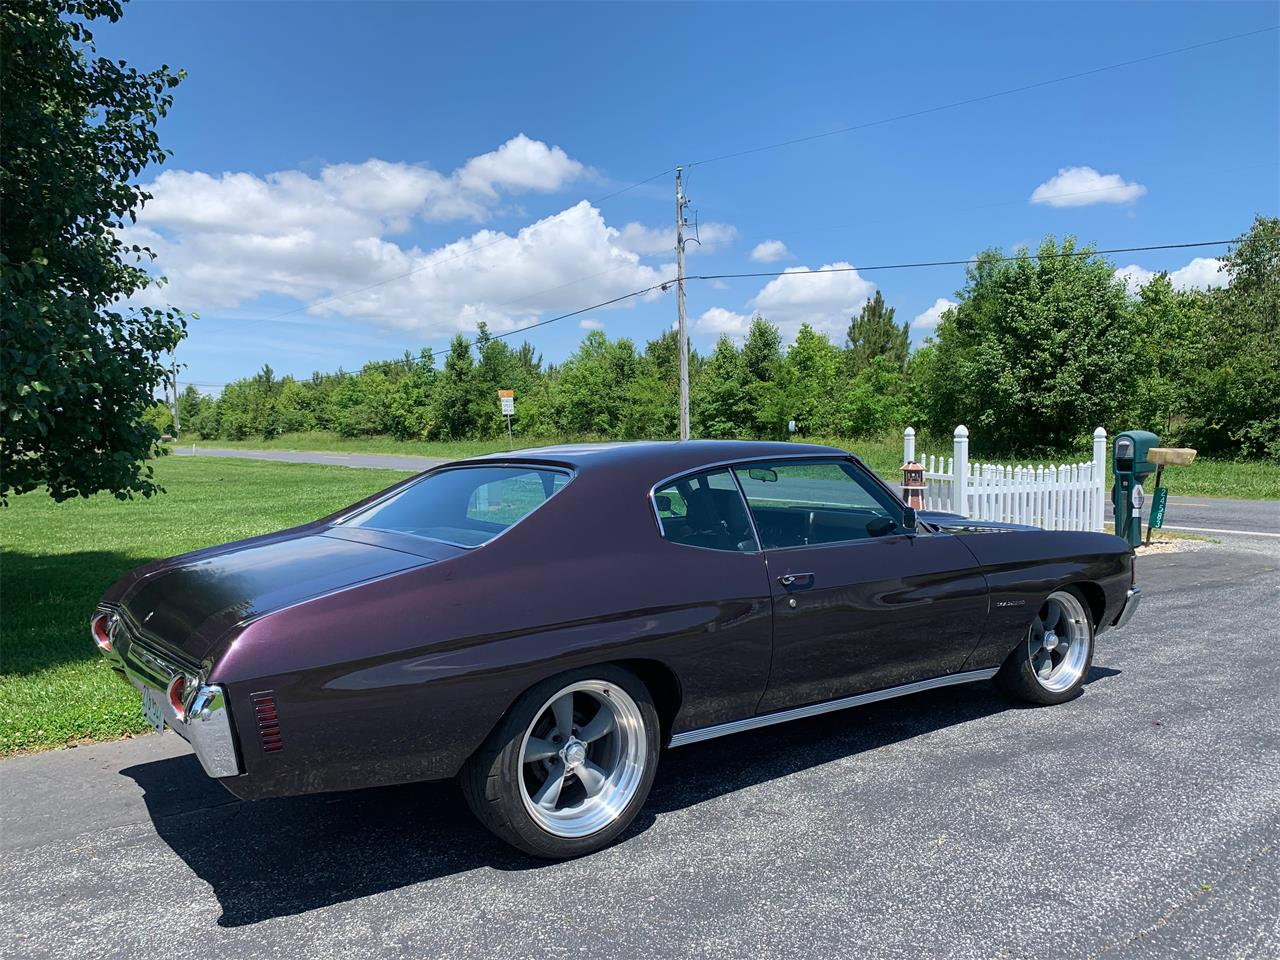 1972 Chevrolet Chevelle Malibu (CC-1239035) for sale in Ridgely, Maryland